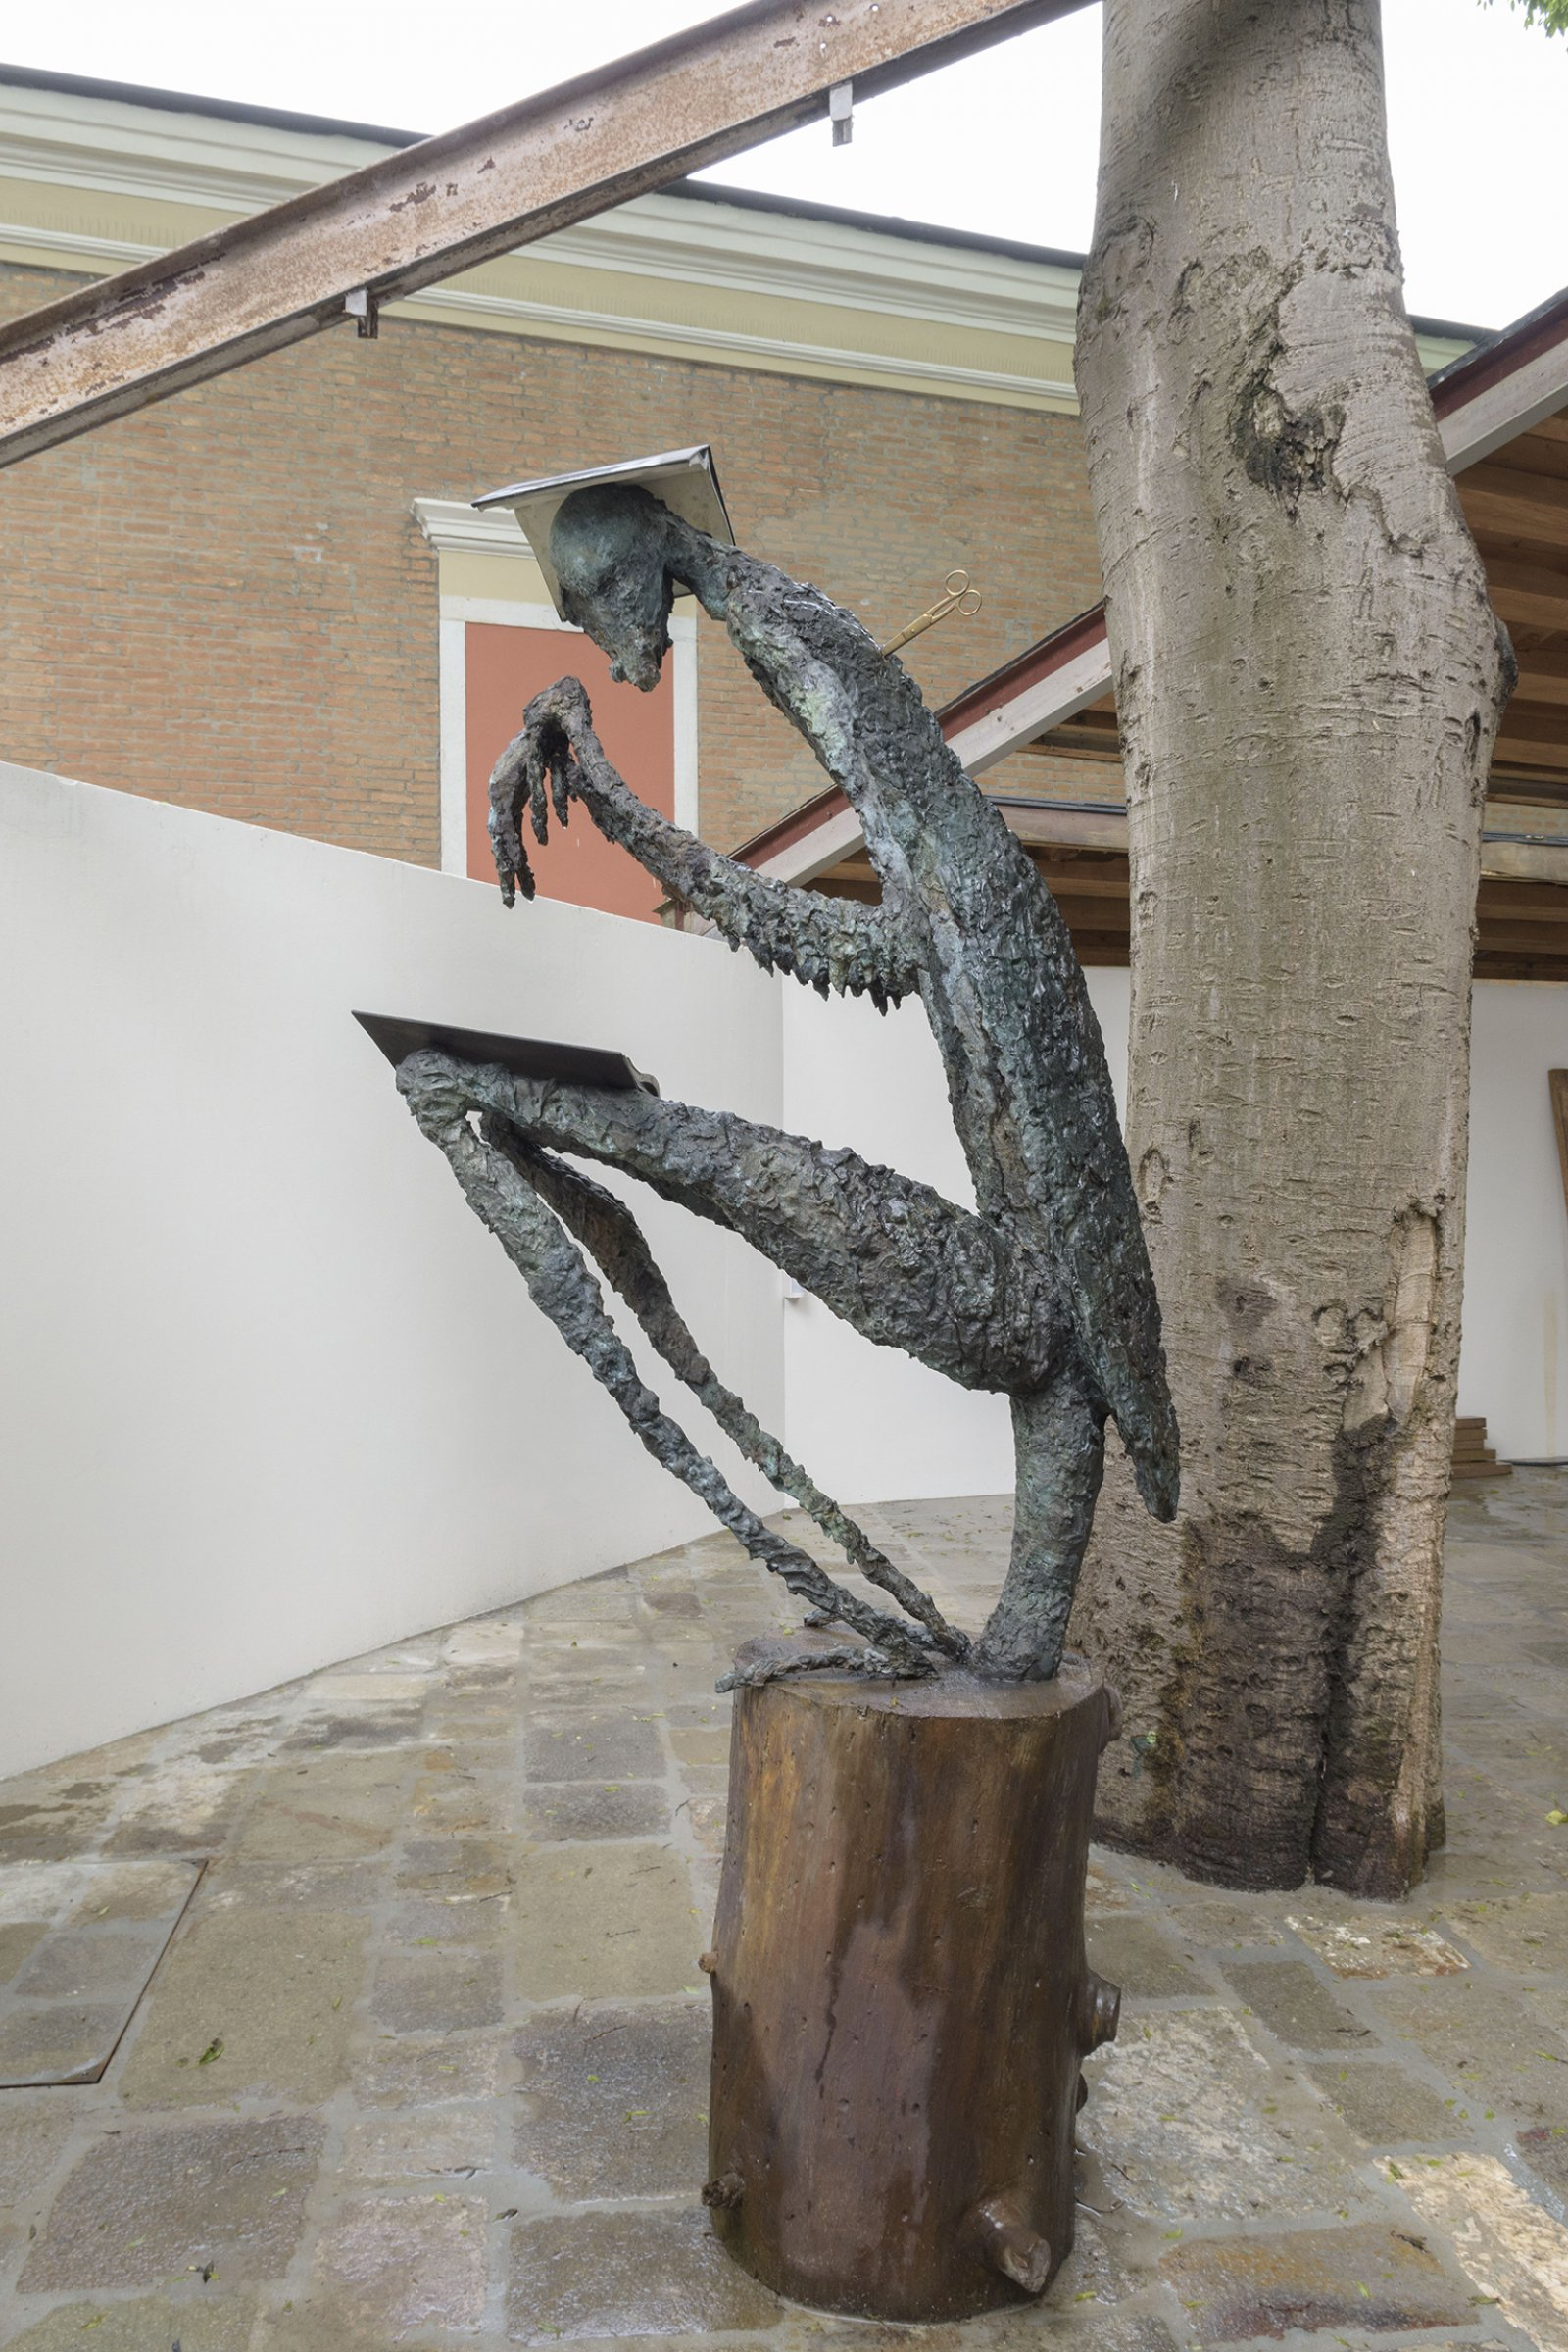 Geoffrey Farmer, Praying Mantis, 2017, cast bronze, waterworks, 97 x 35 x 48 in. (246 x 88 x 123 cm). Installation view, A way out of the mirror, Canada Pavilion, 57th Venice Biennale, Venice, Italy